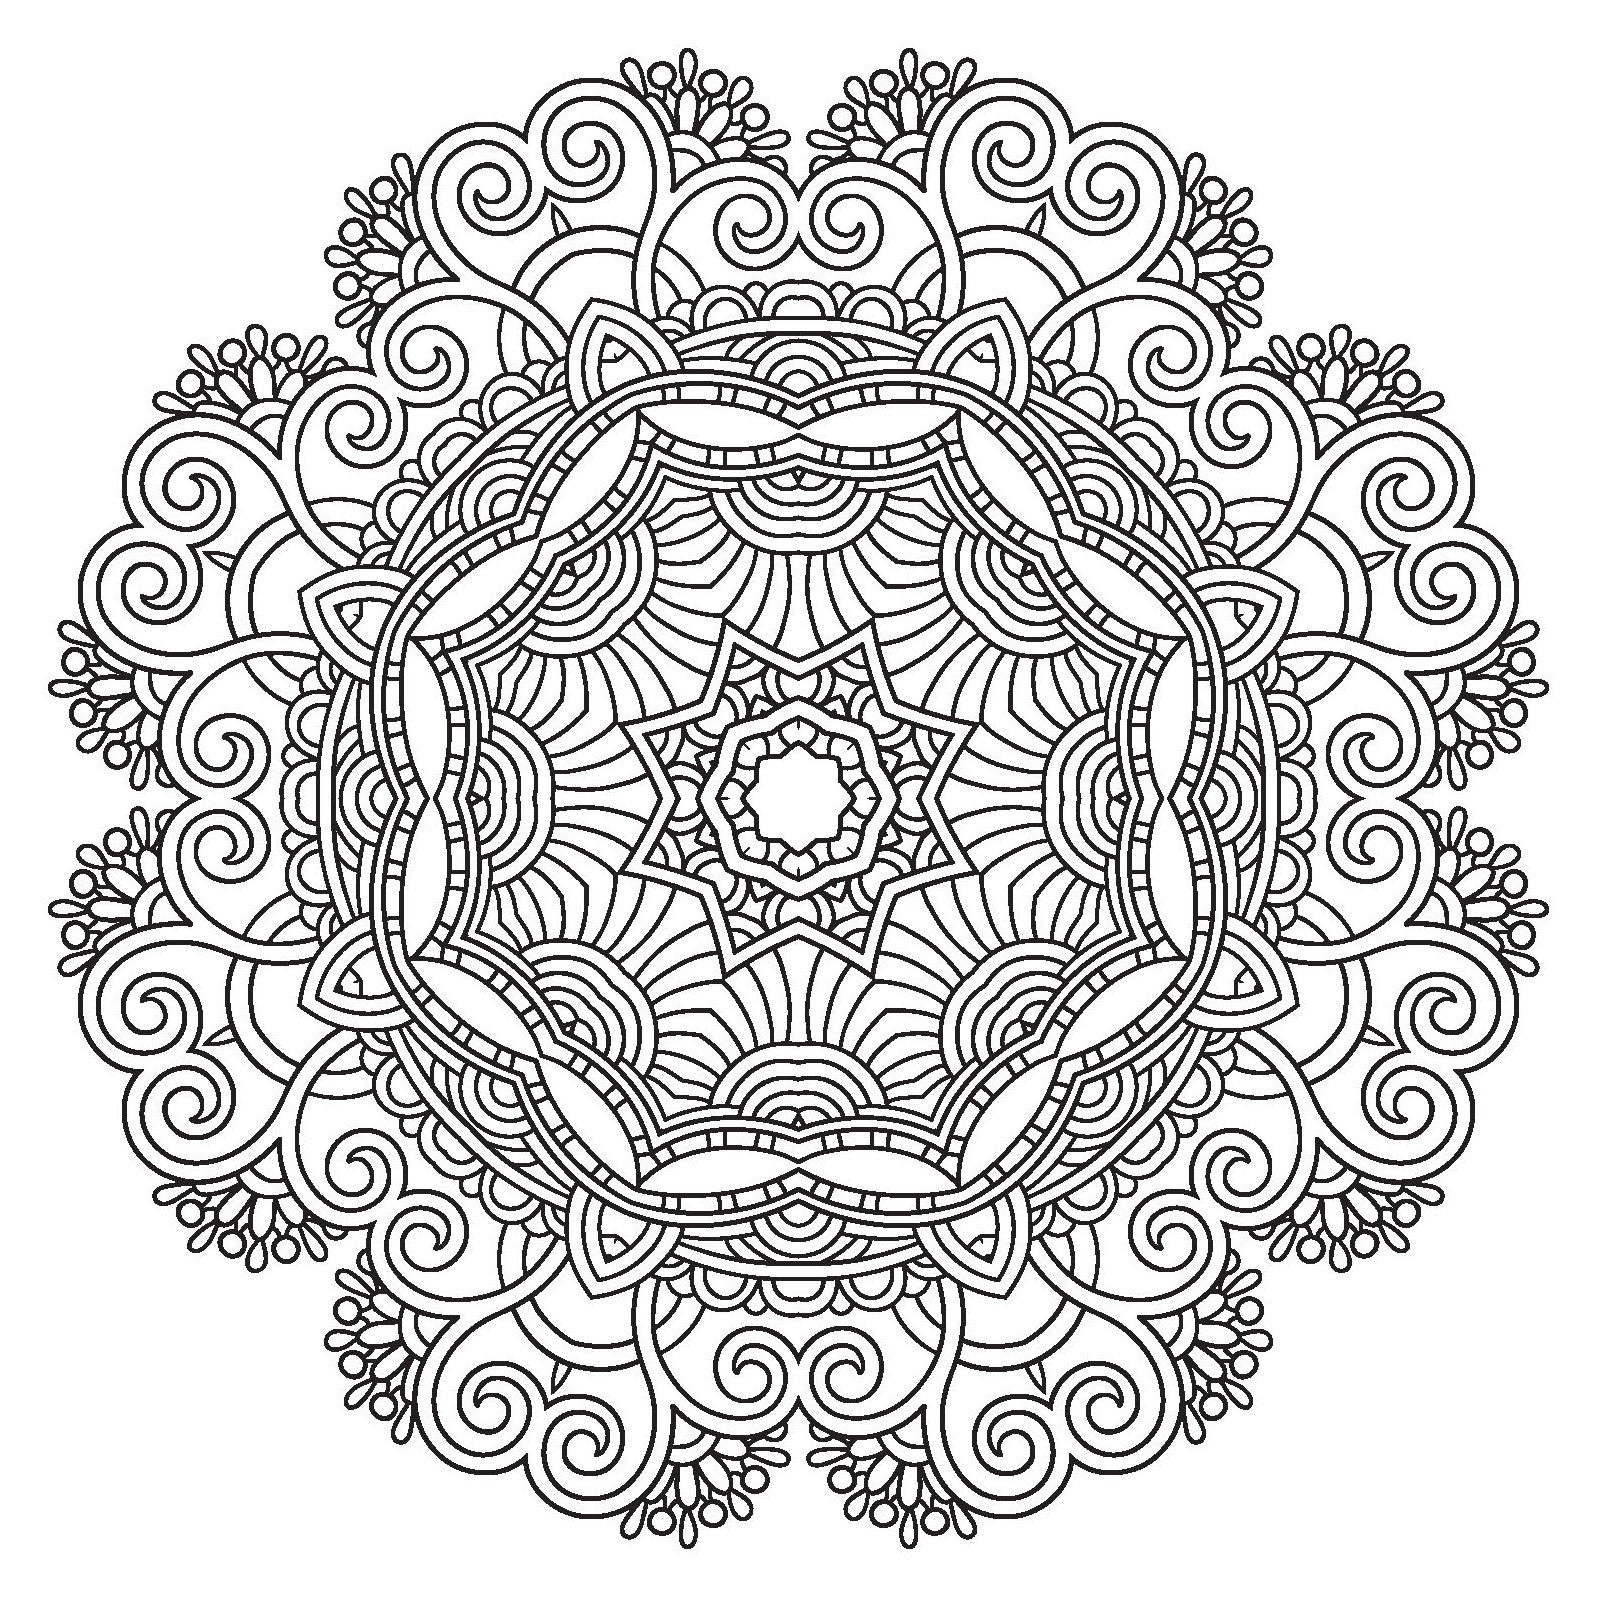 Relaxing Mandalas Adult Coloring Book With Relaxation CD